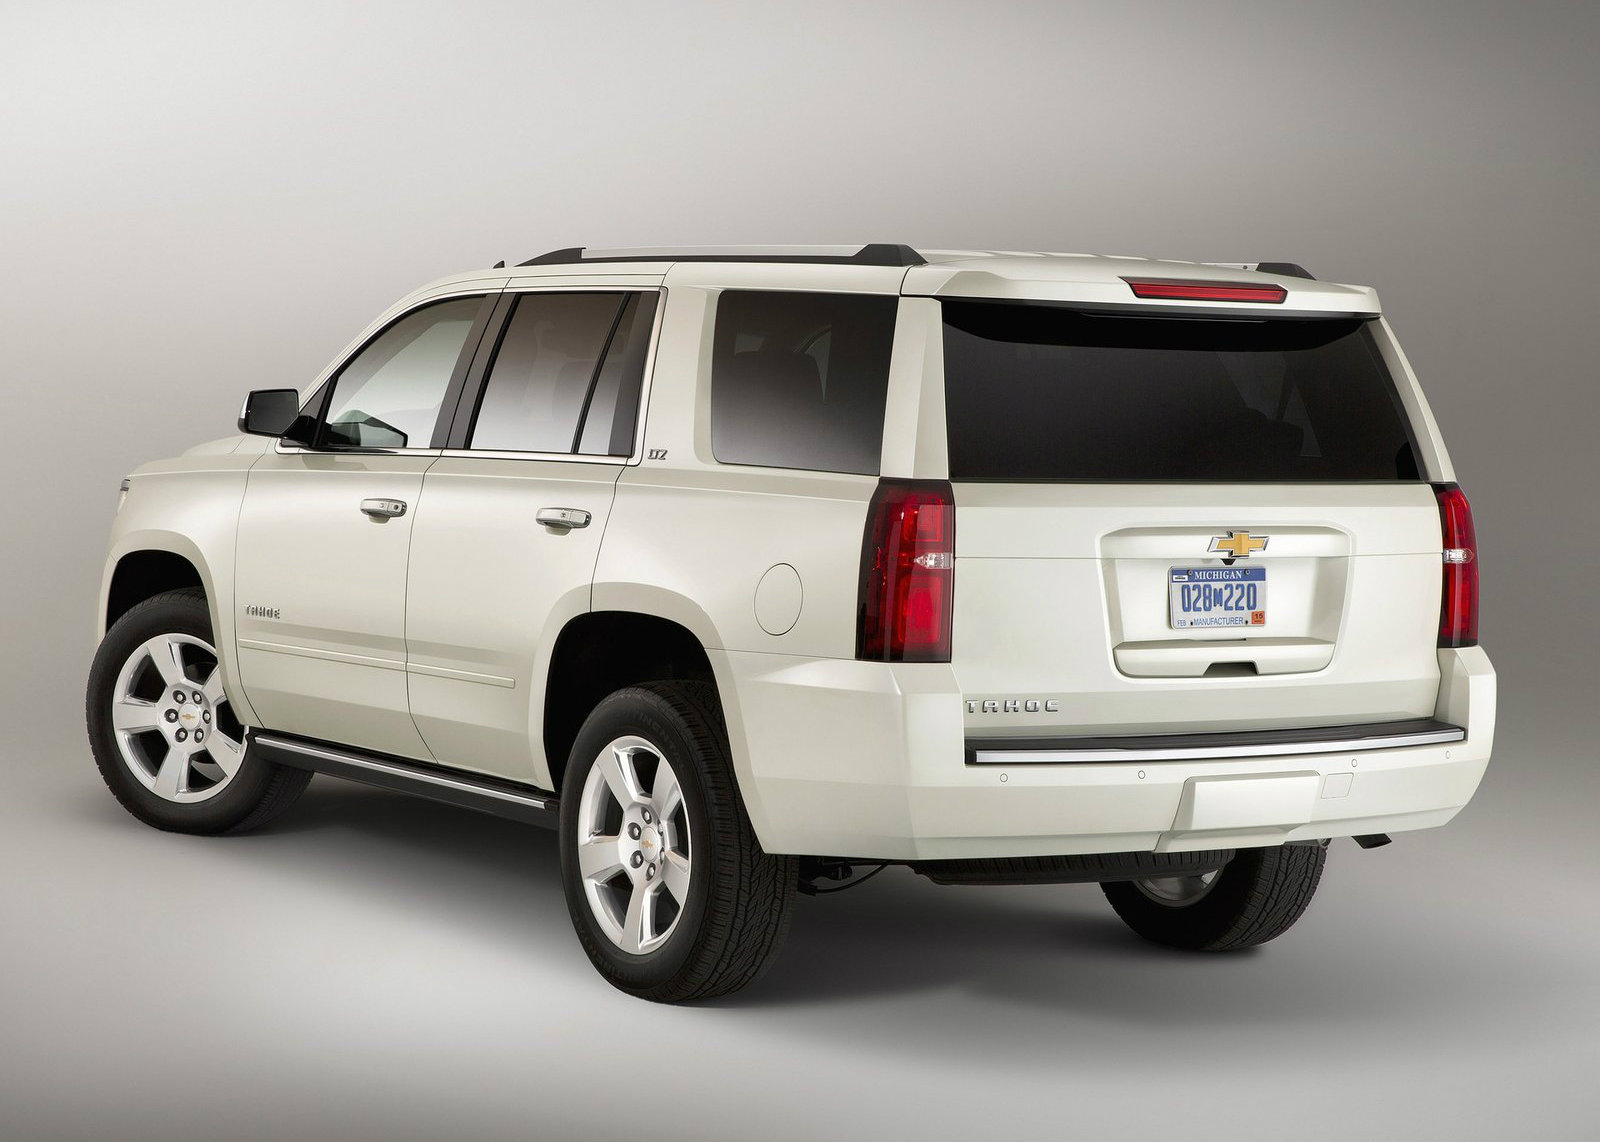 Gm Full Size Suvs Updated For The 2015i Model Year